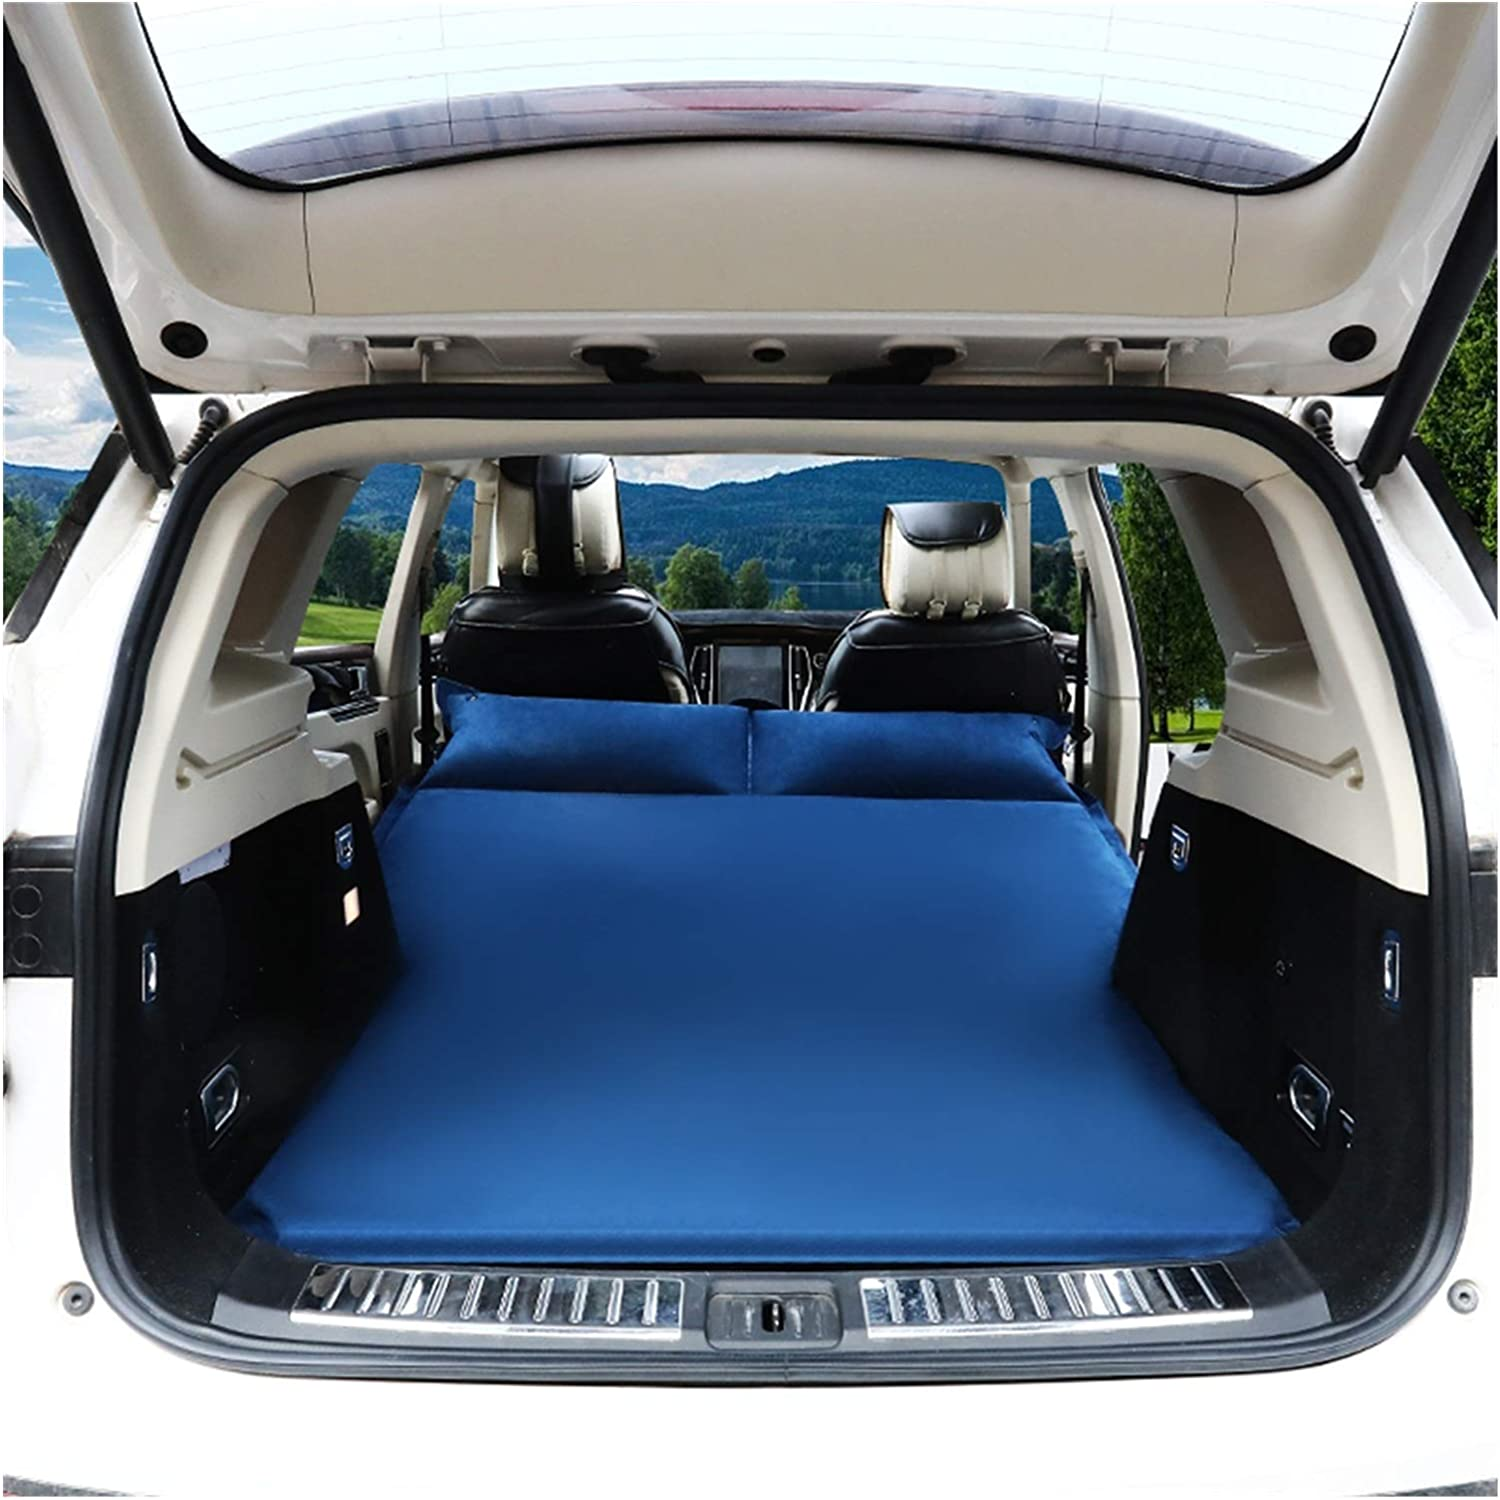 High material JPMSB Car Home Office Inflatable Outdoor People Mattress Elegant Air 2-3